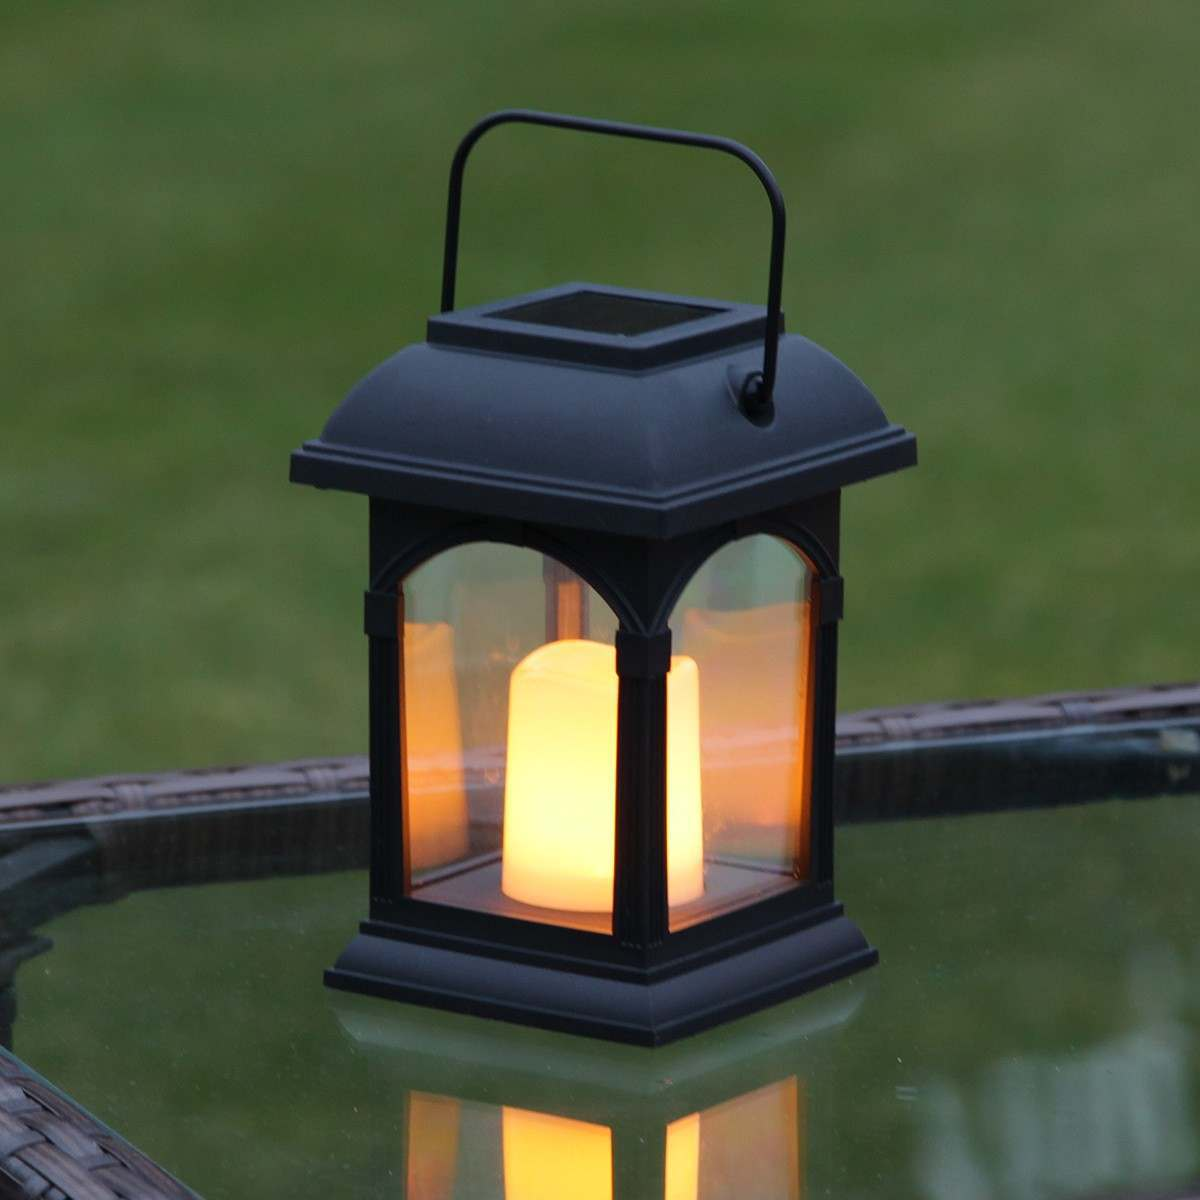 collection black solar candle lantern flickering amber led 15cm